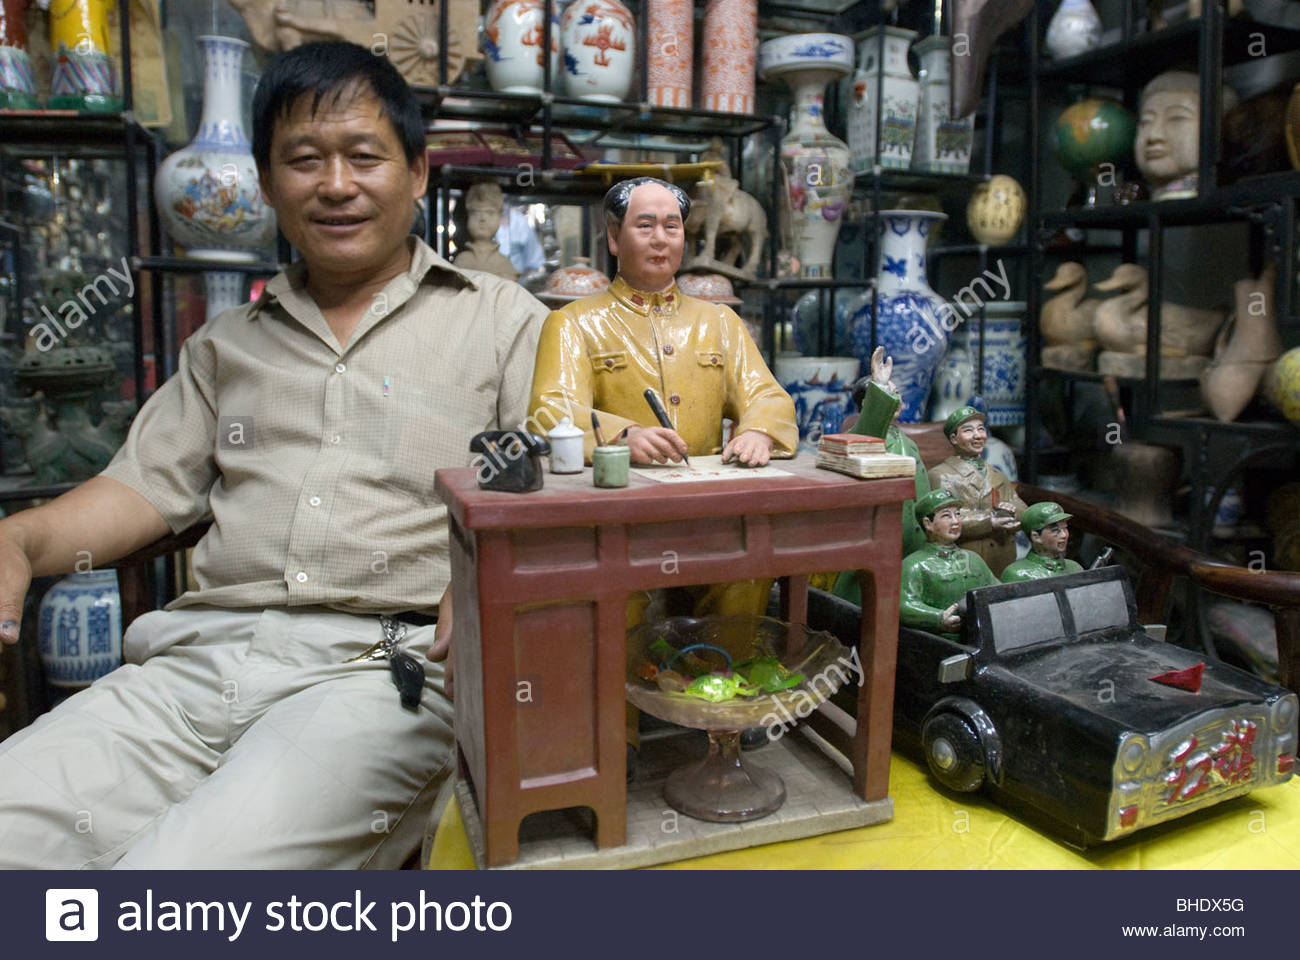 Selling objects whorshipping Mao Zedong on the antique dealer's street. Beijing, china - Stock Image